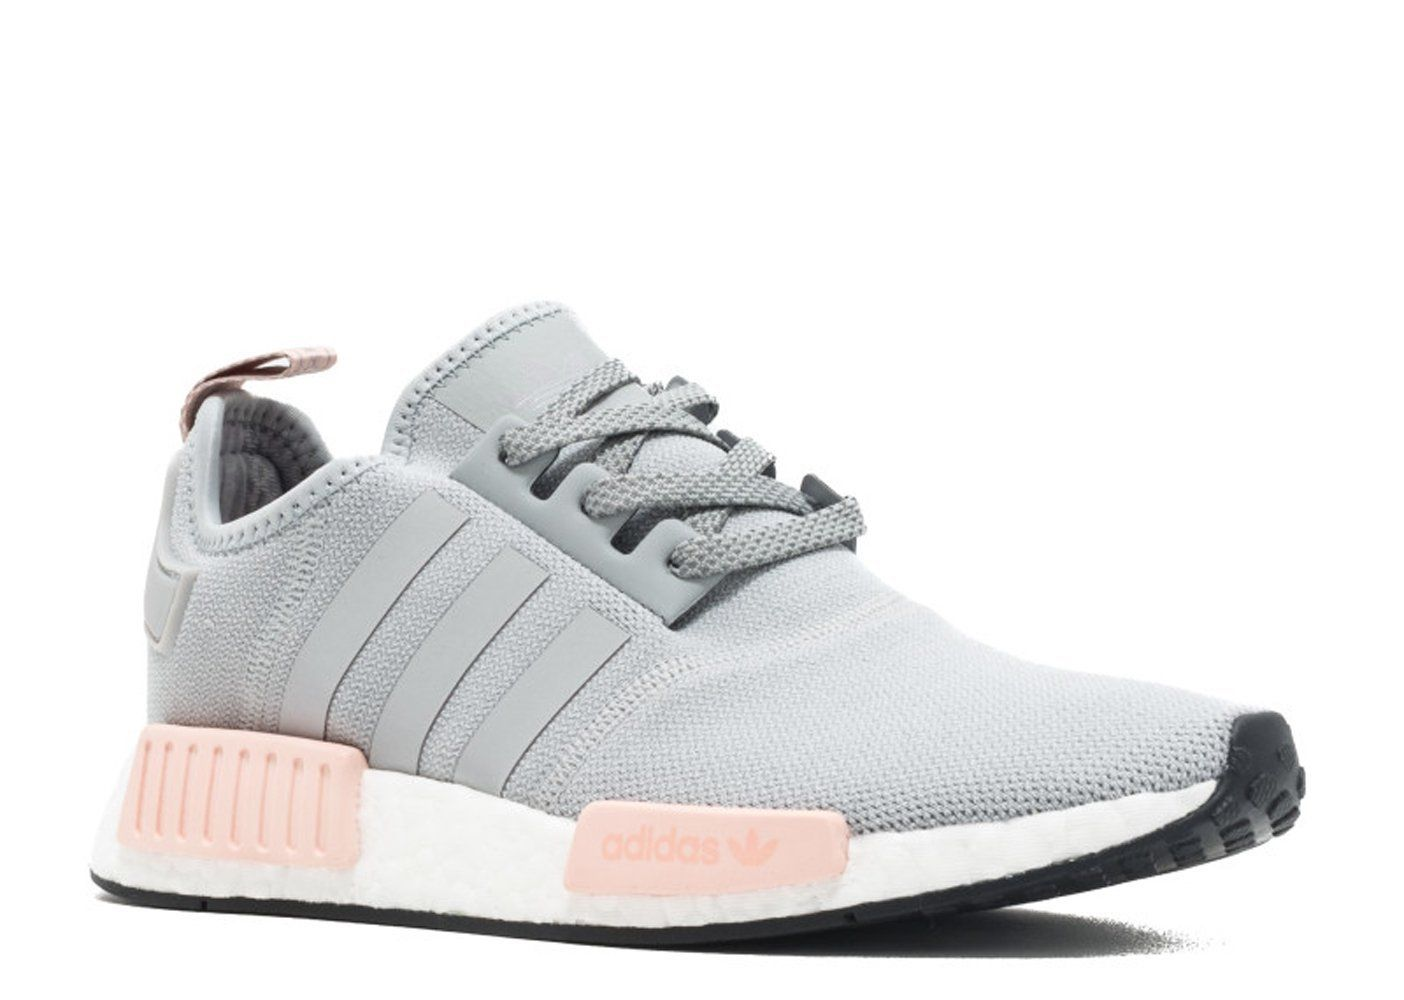 KEEVIN Adidas NMD r1 raw gray pink women\u0027s casual shoes